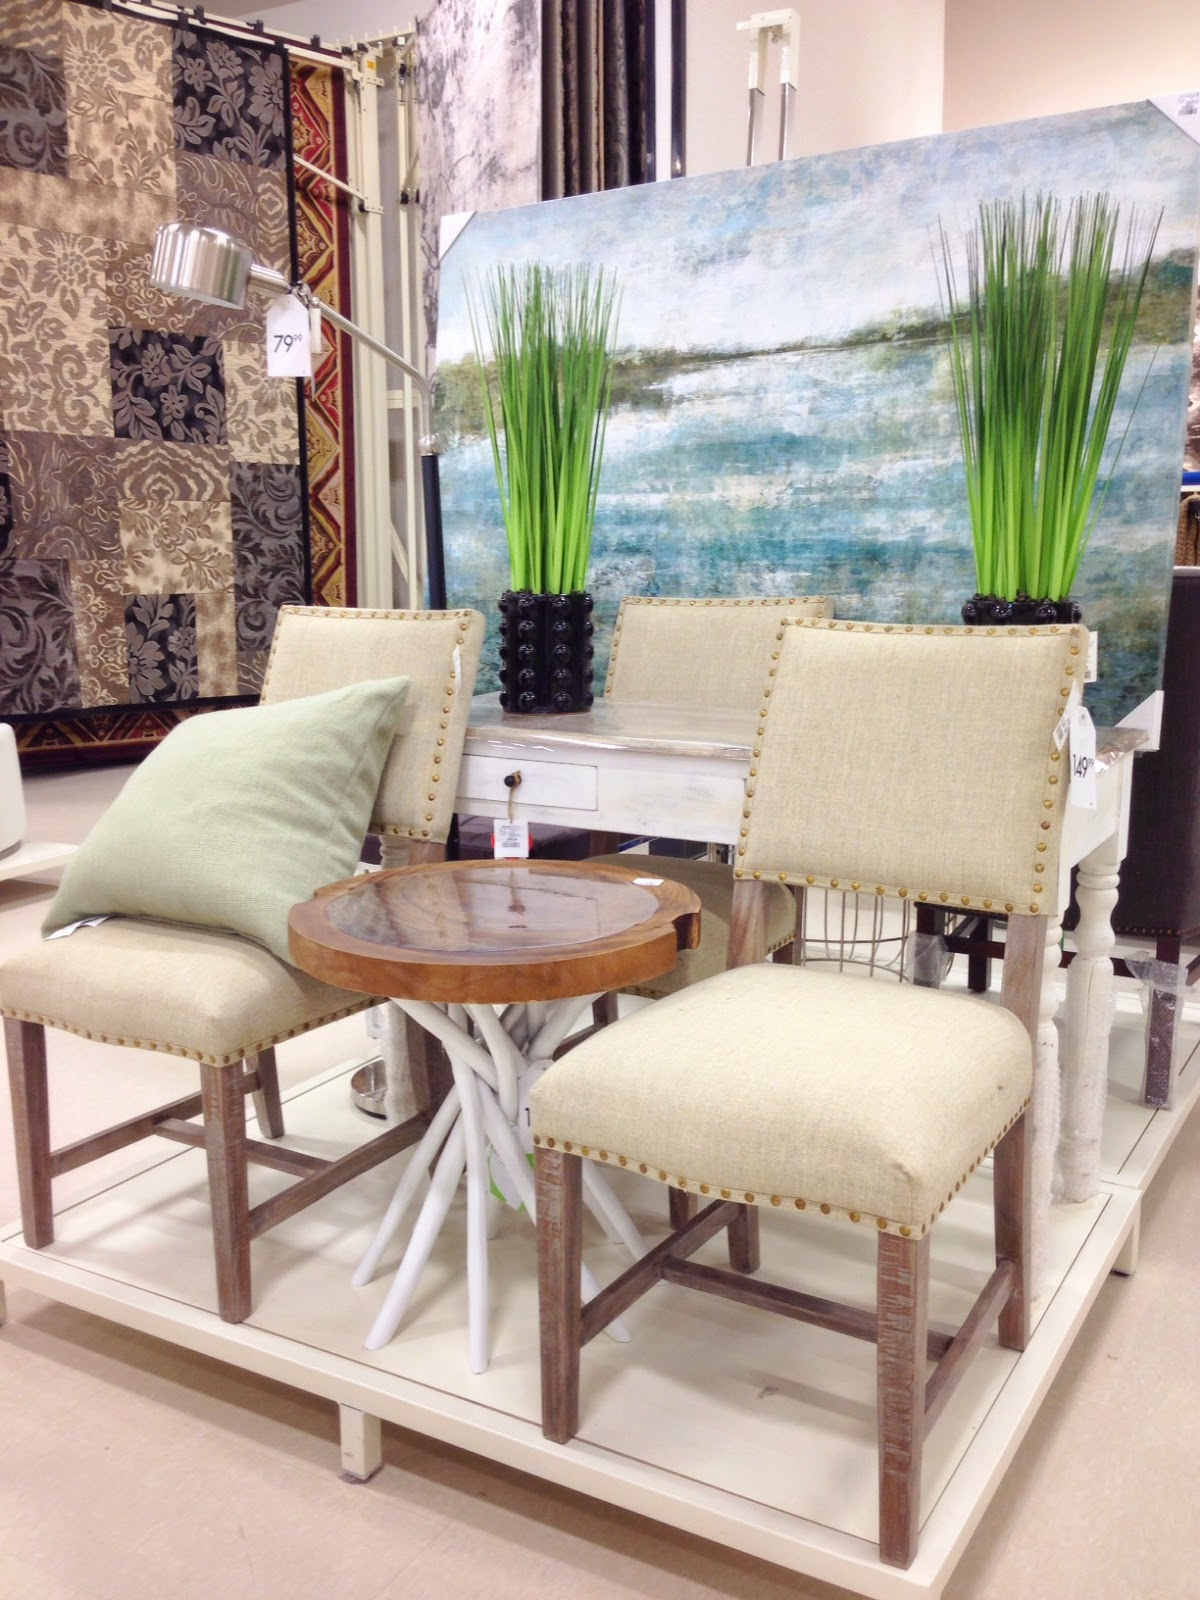 Elliven Studio GIVEAWAY IS NOW CLOSED HomeSense Stockyards Location A Giveaway